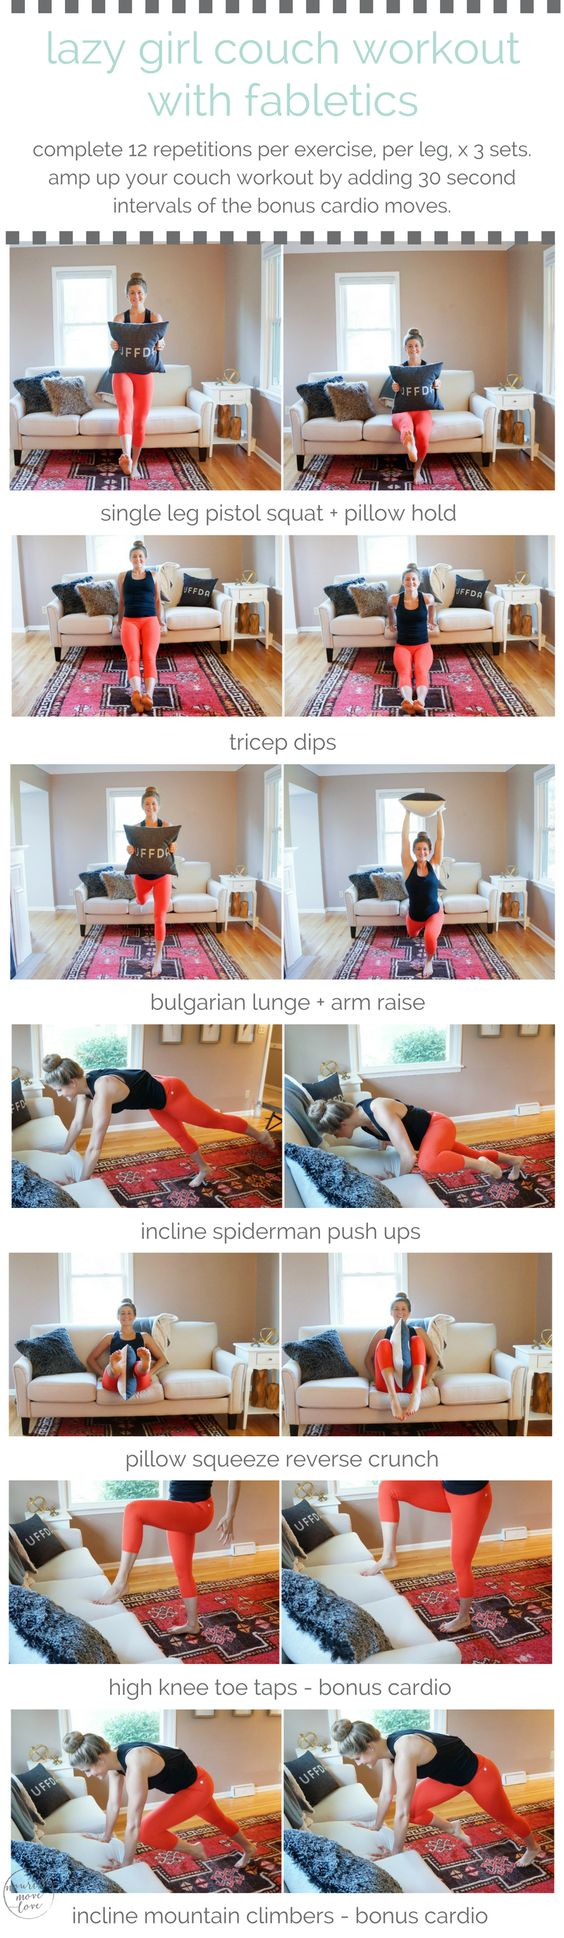 10 Workouts For When You Are Feeling Lazy